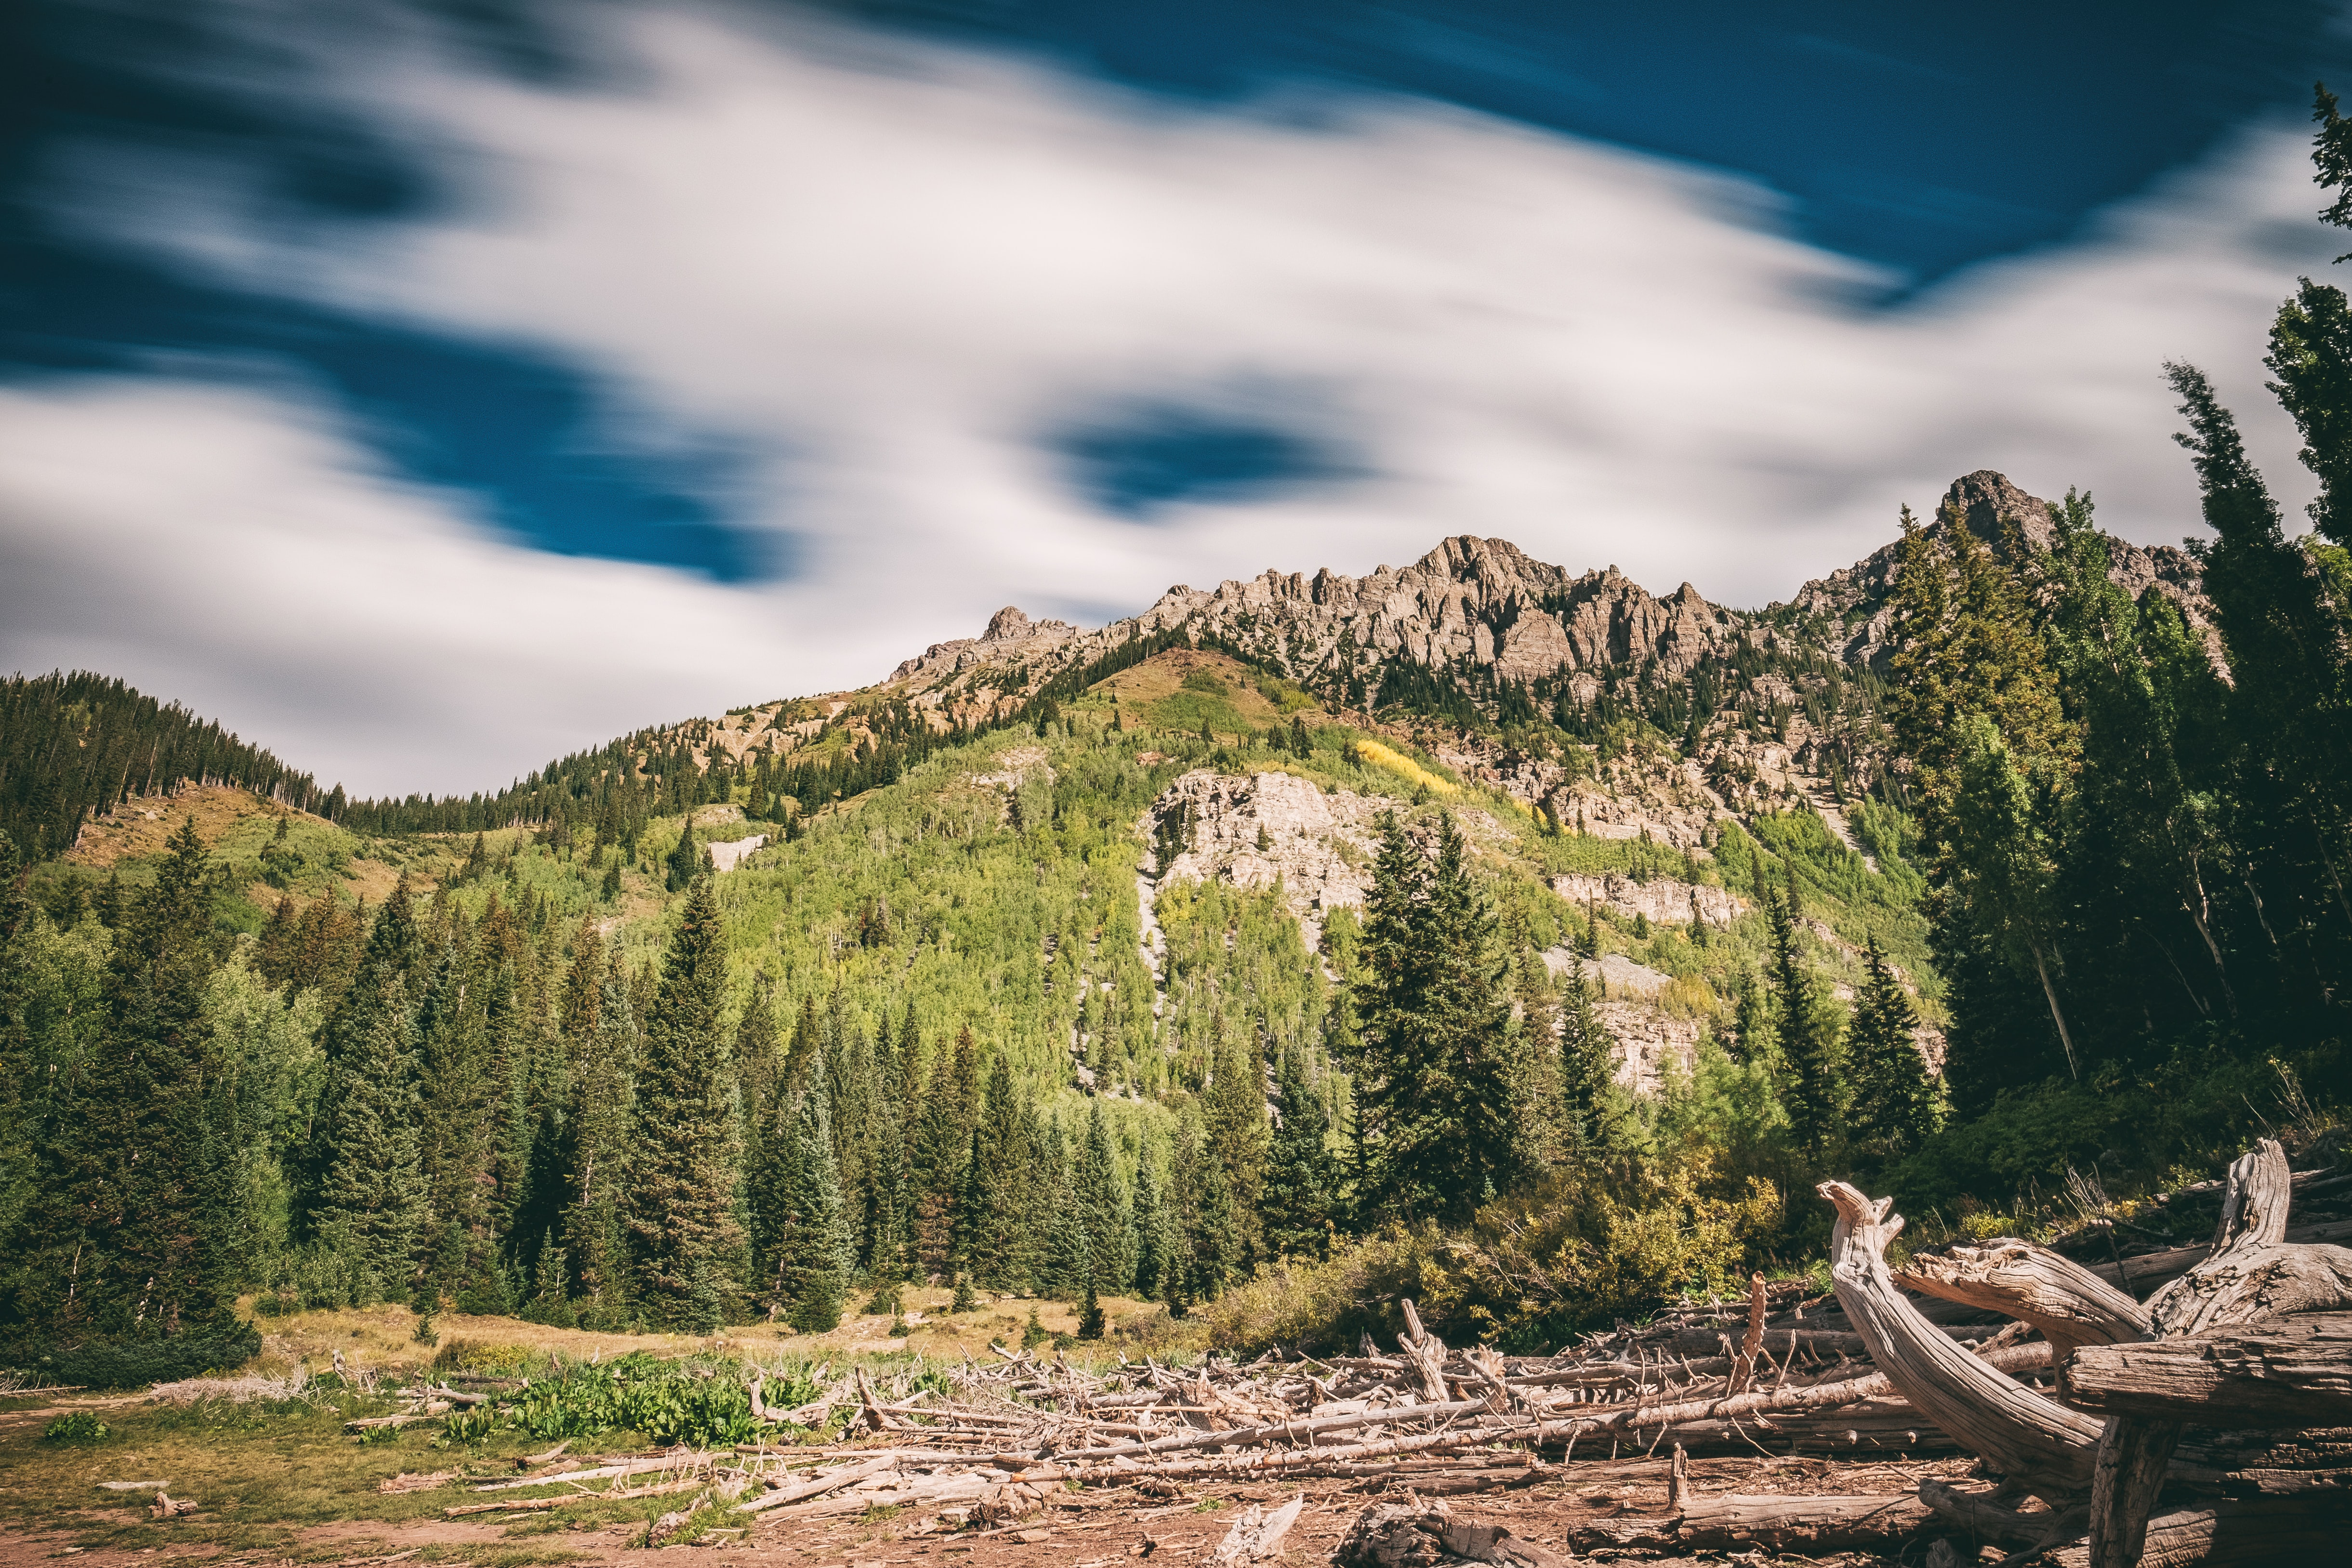 landscape photography of green mountain under clear sky